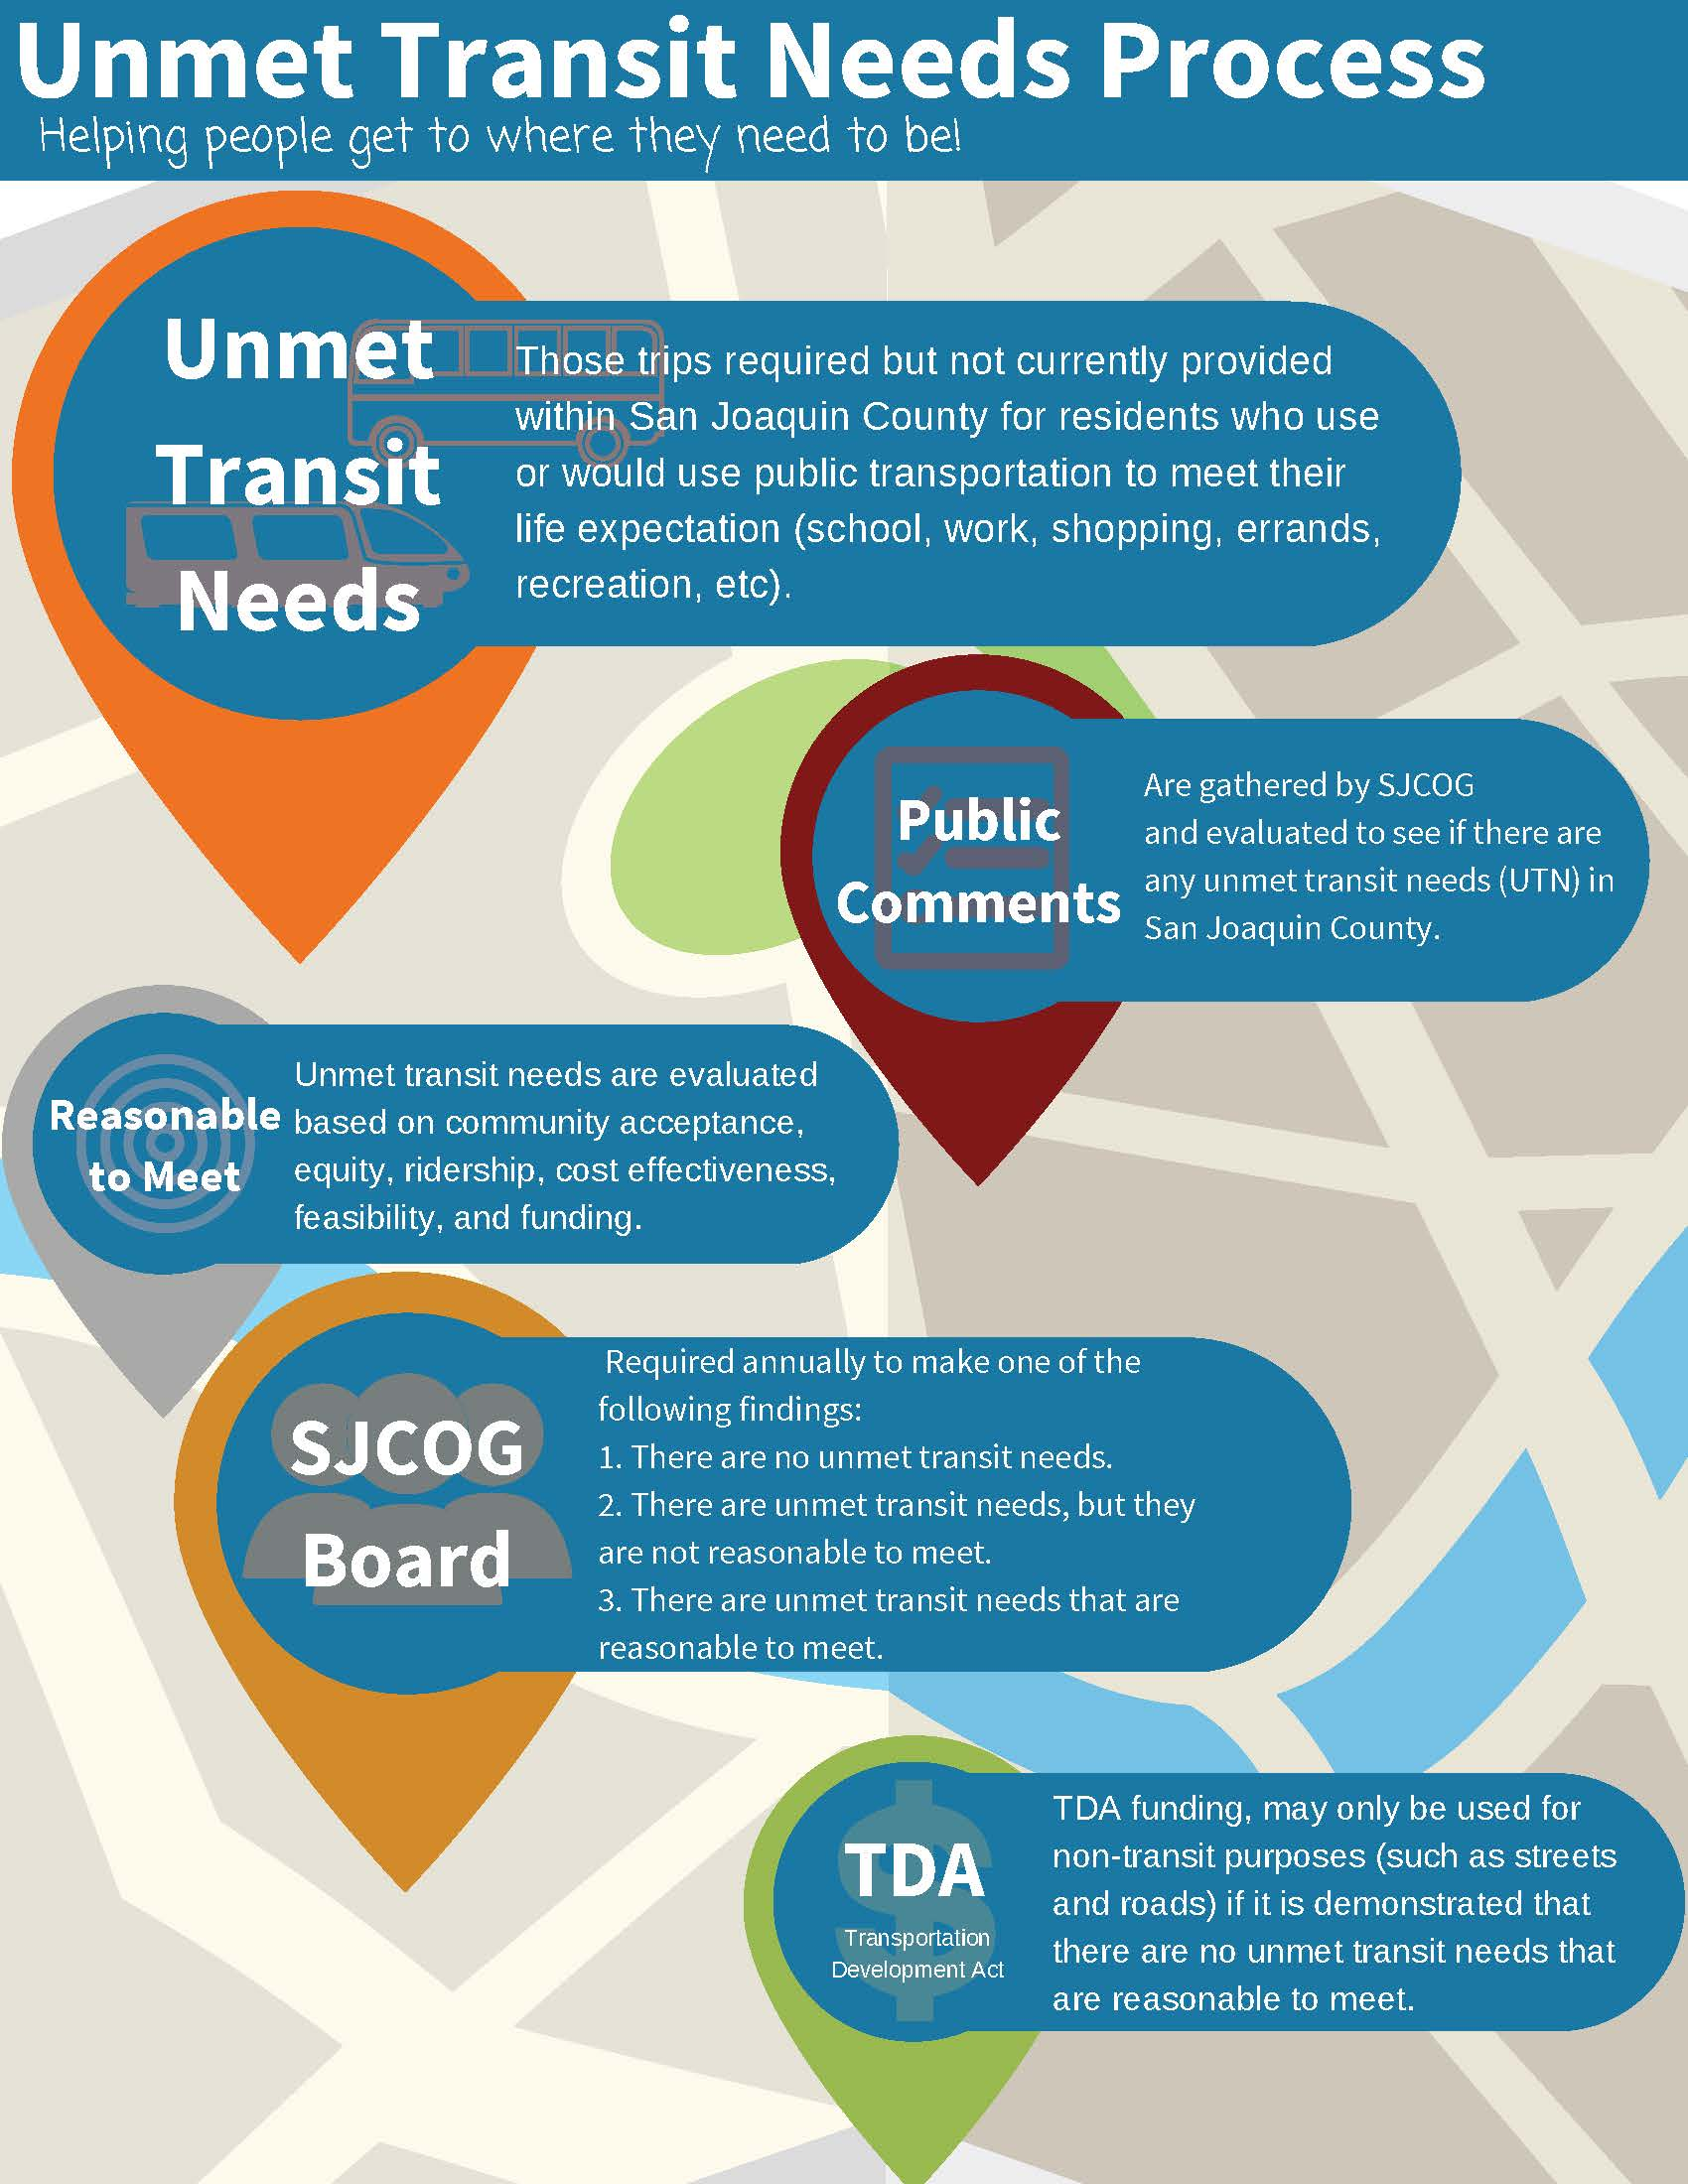 Infographic explaining the Unmet Transit Needs Process